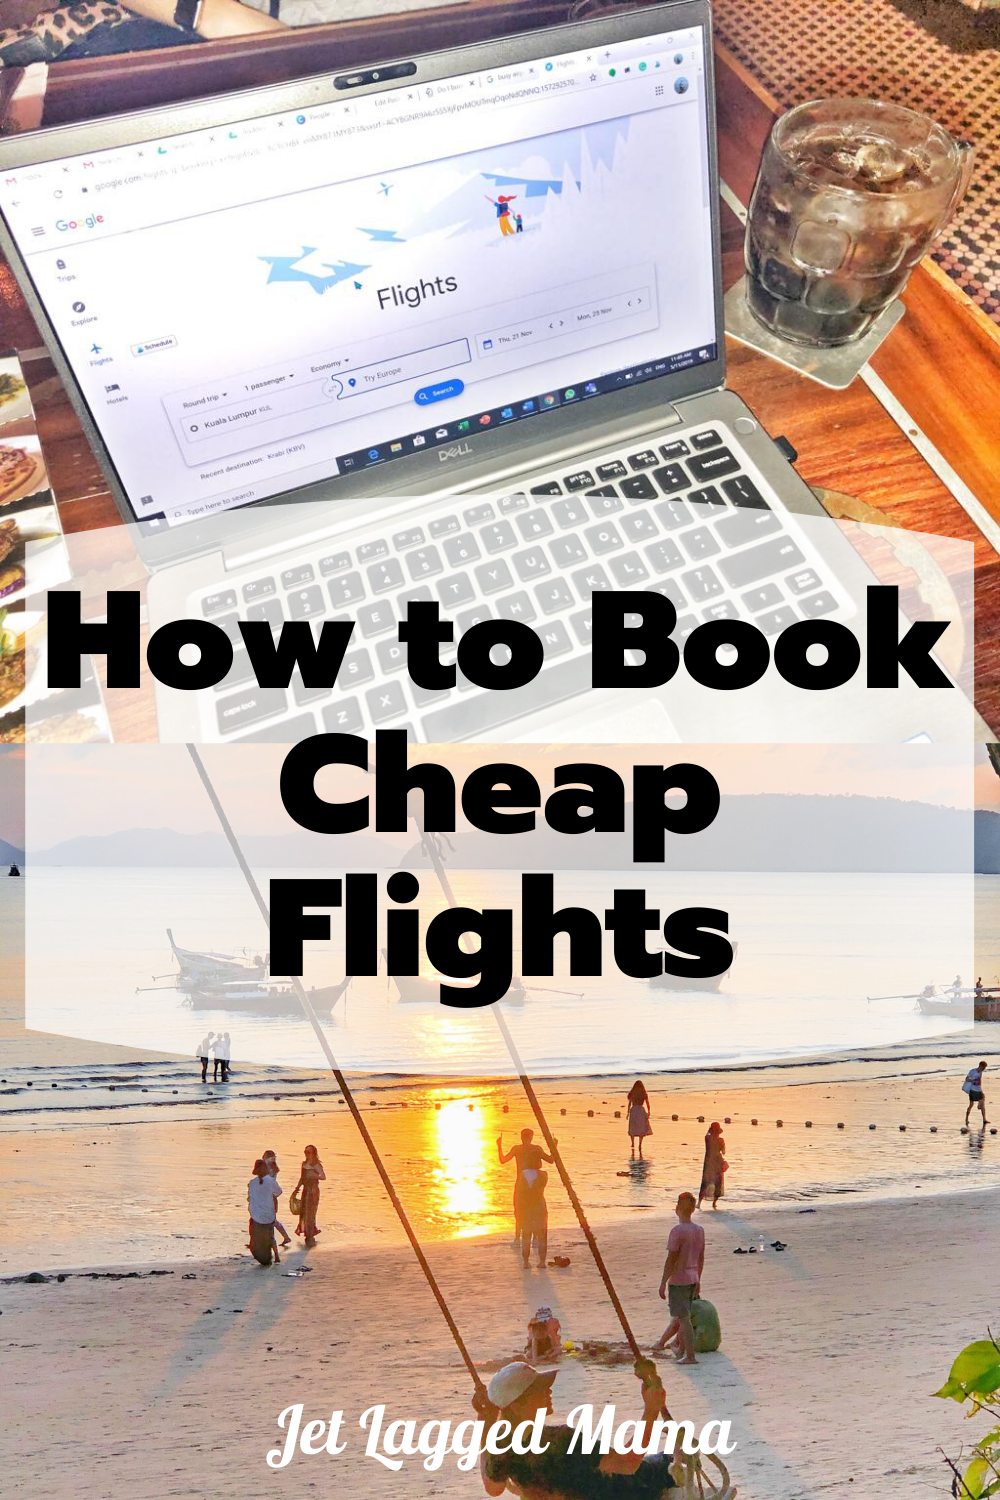 Let's talk about how to find cheap flights anywhere and book it! So that you can score killer deals on flights. There are some tricks to scoring great deals and they are not as difficult as you might think. With a little flexibility you might just book that dream trip or plan a 2nd honeymoon. #cheapflights #budgettravel #cheapairfare #family vacation #jetsetter #skymiles